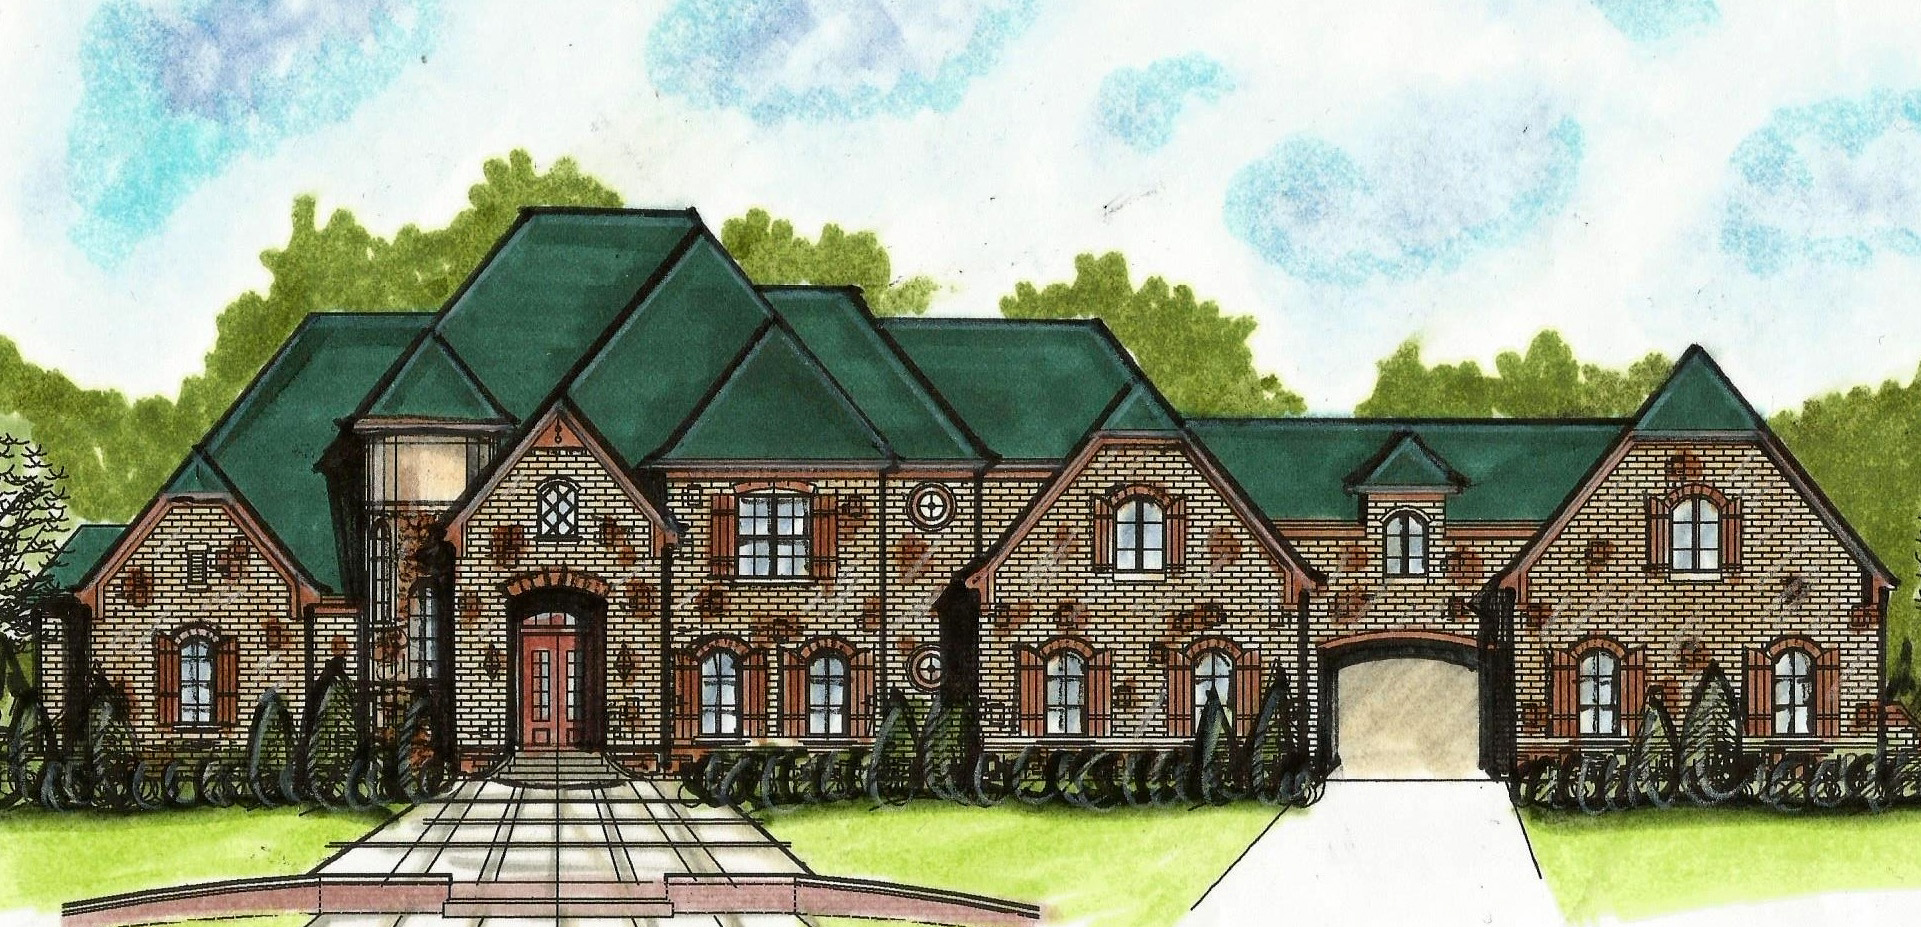 European House Plan With Porte Cochere 13498by